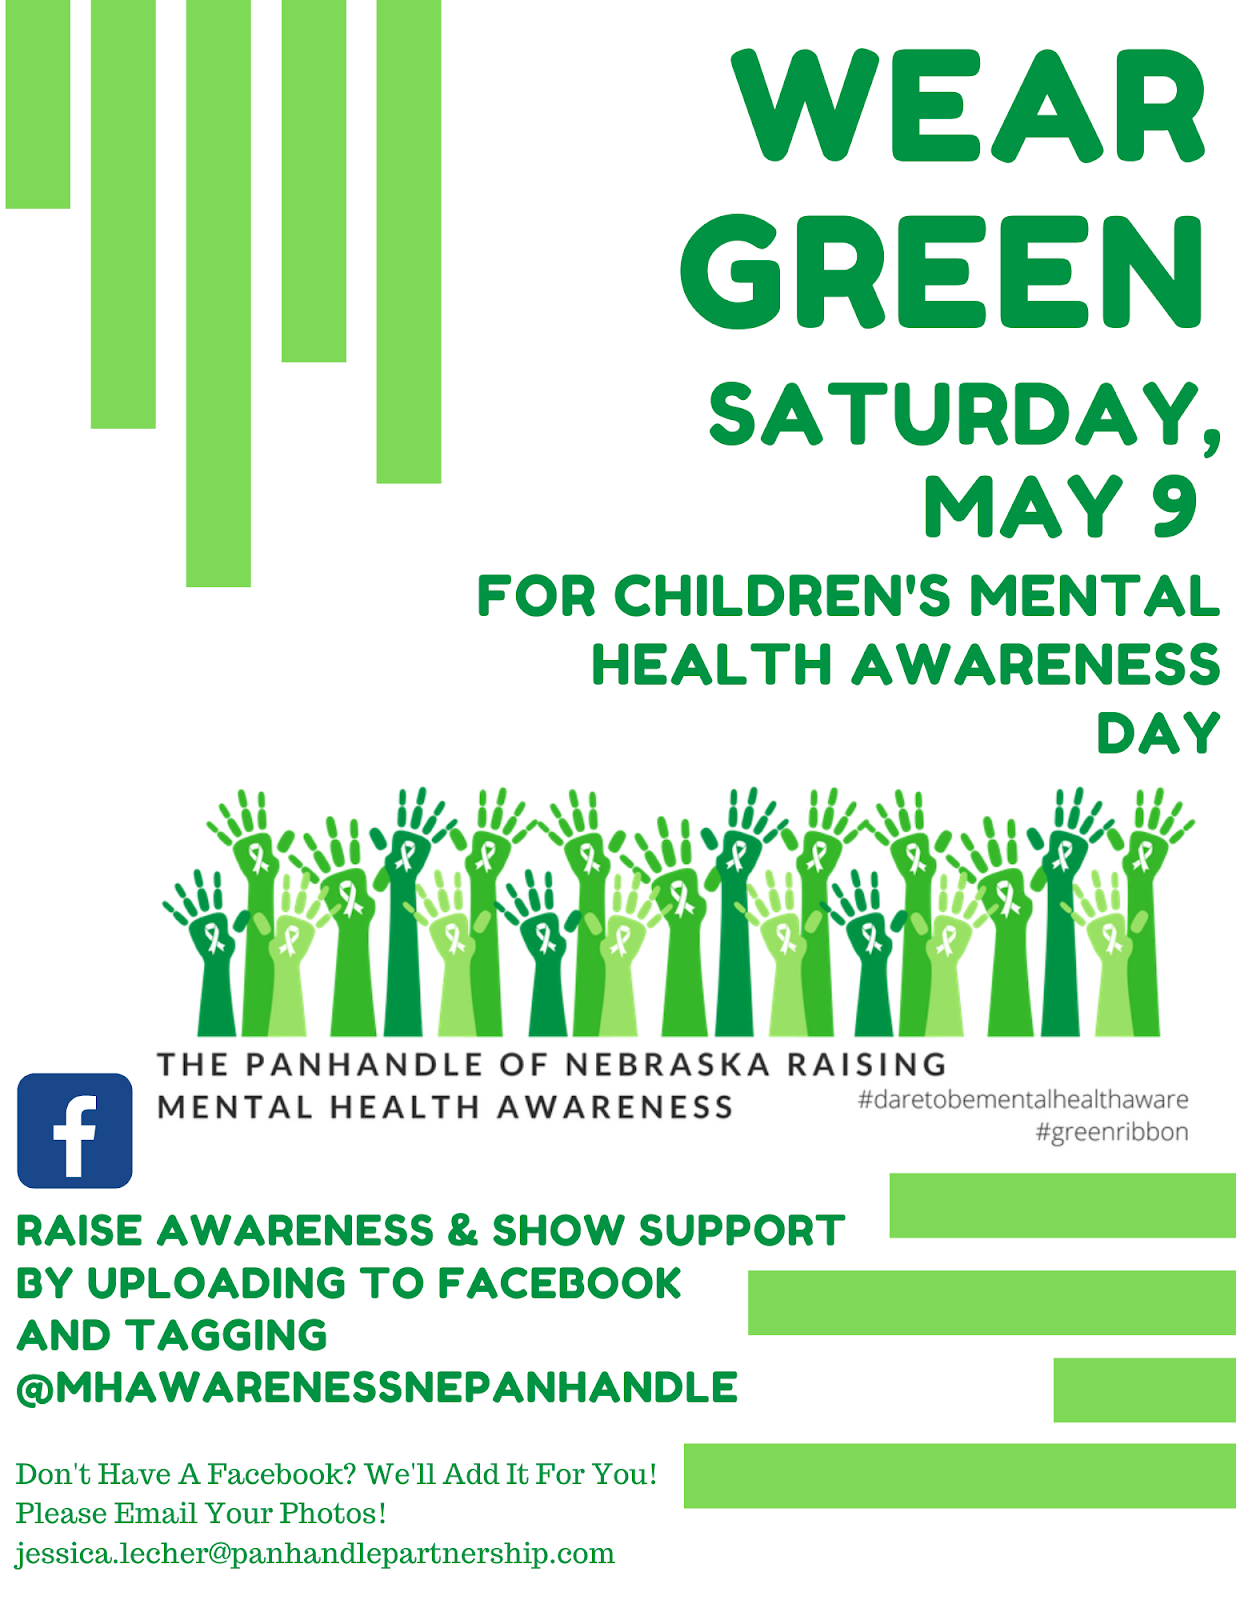 Chadron High School Blog: May is Mental Health Awareness Month